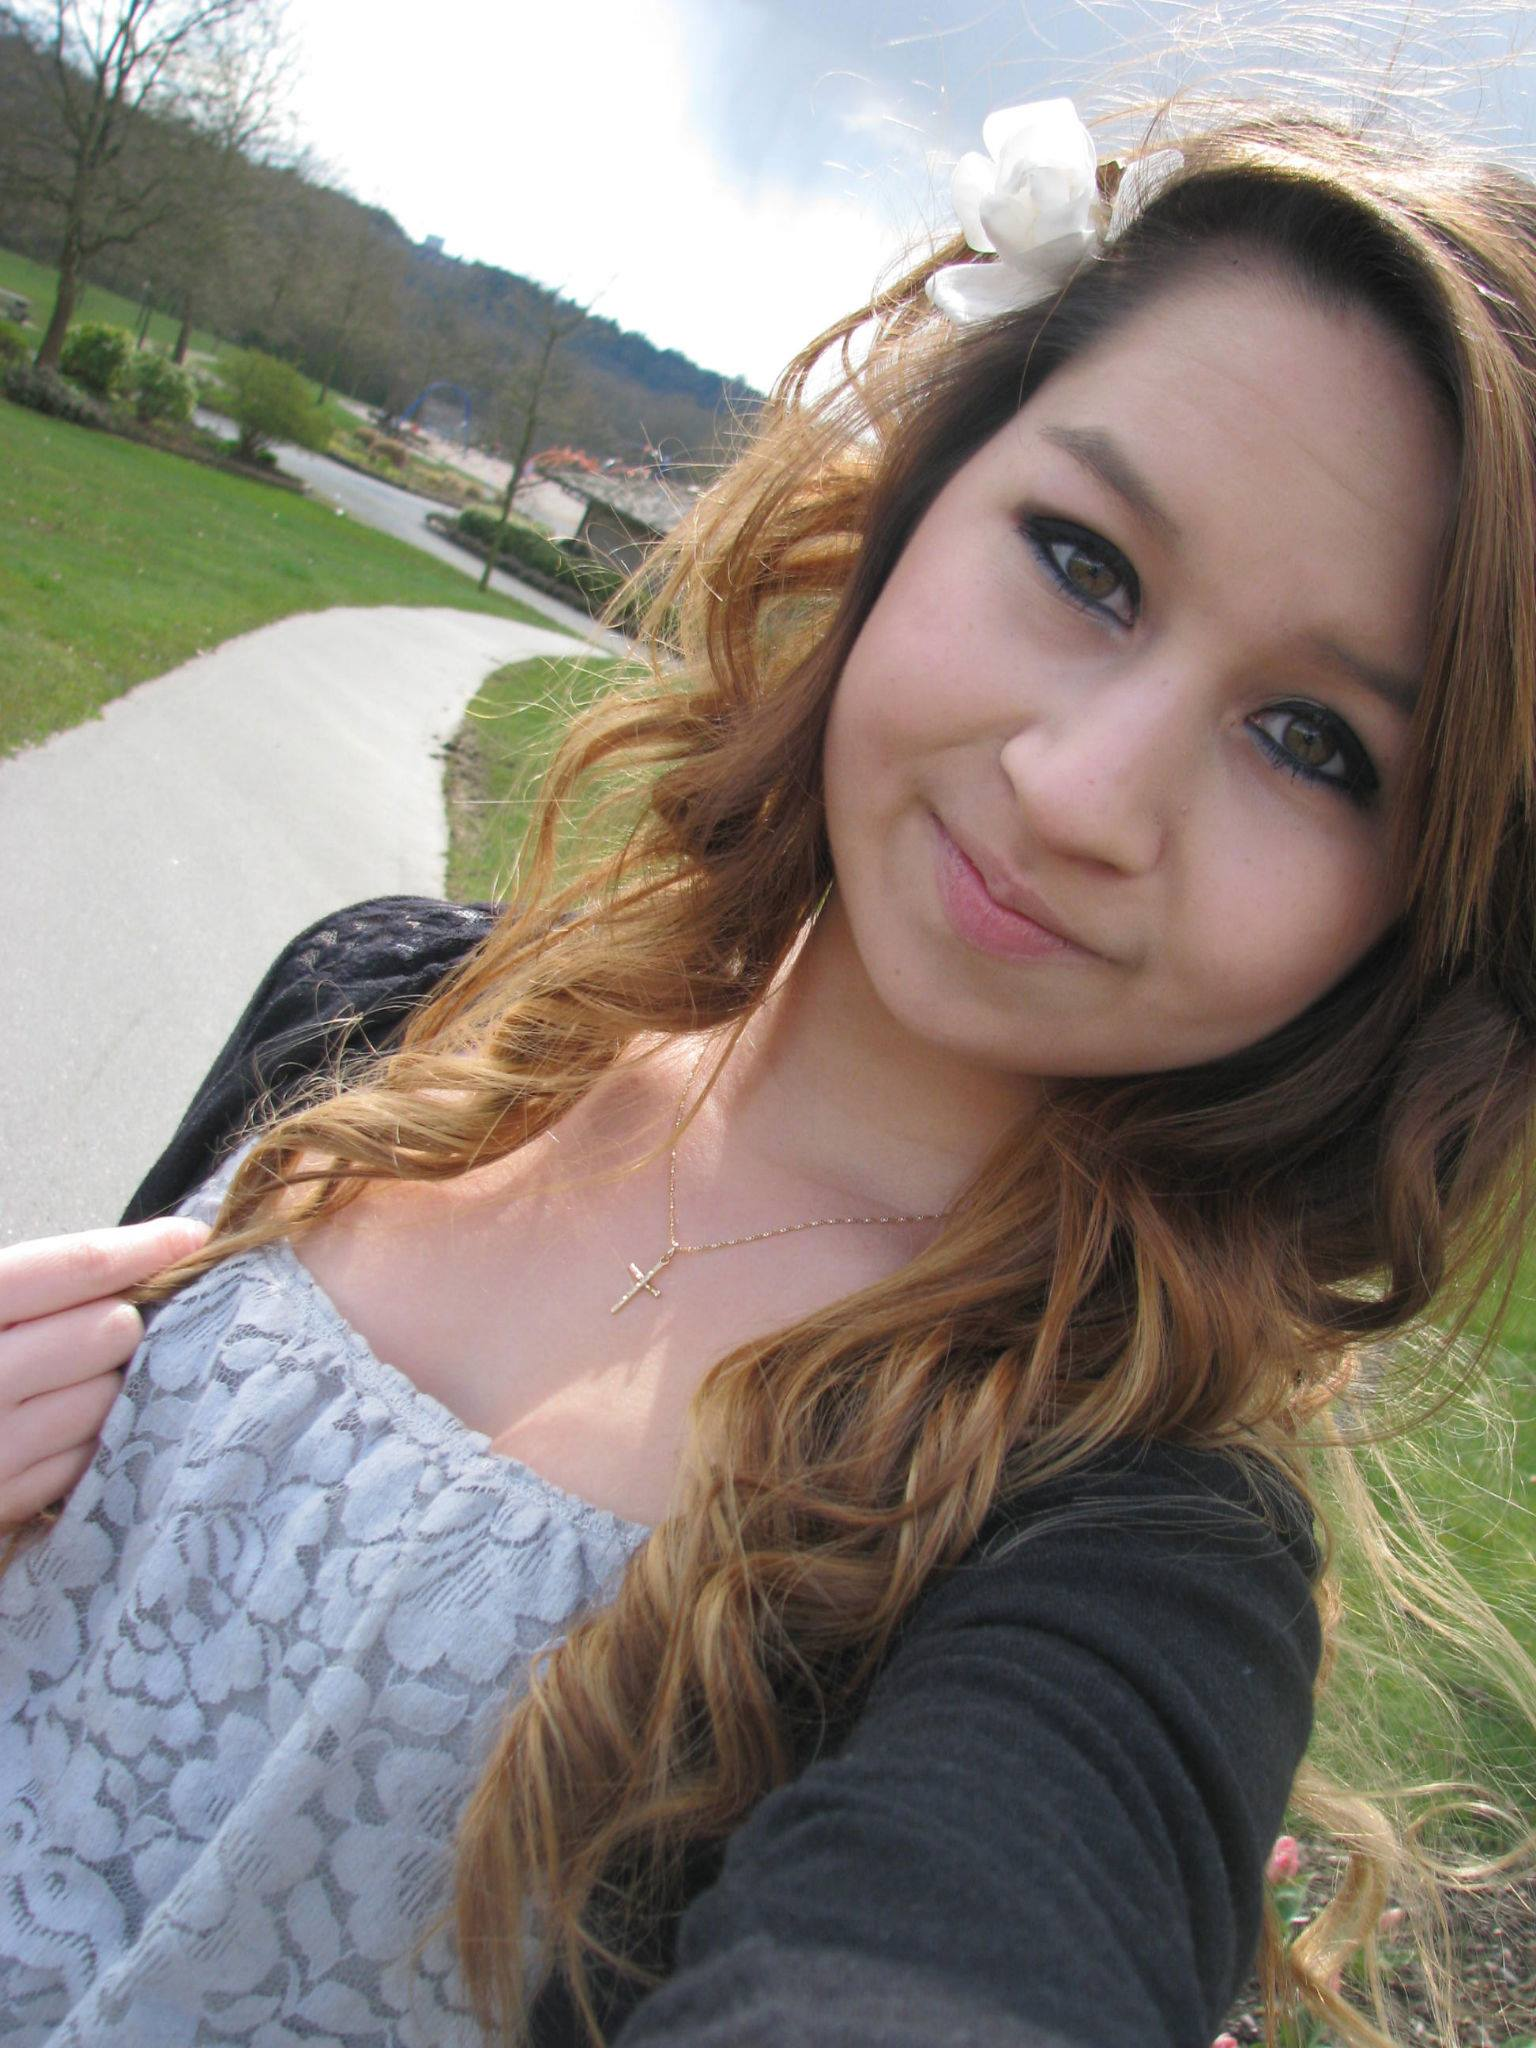 BC teenager Amanda Todd took her own life aged 15 after years of bullying over an explicit photo of her posted online (Amanda Todd Legacy - Staying Strong/Facebook)